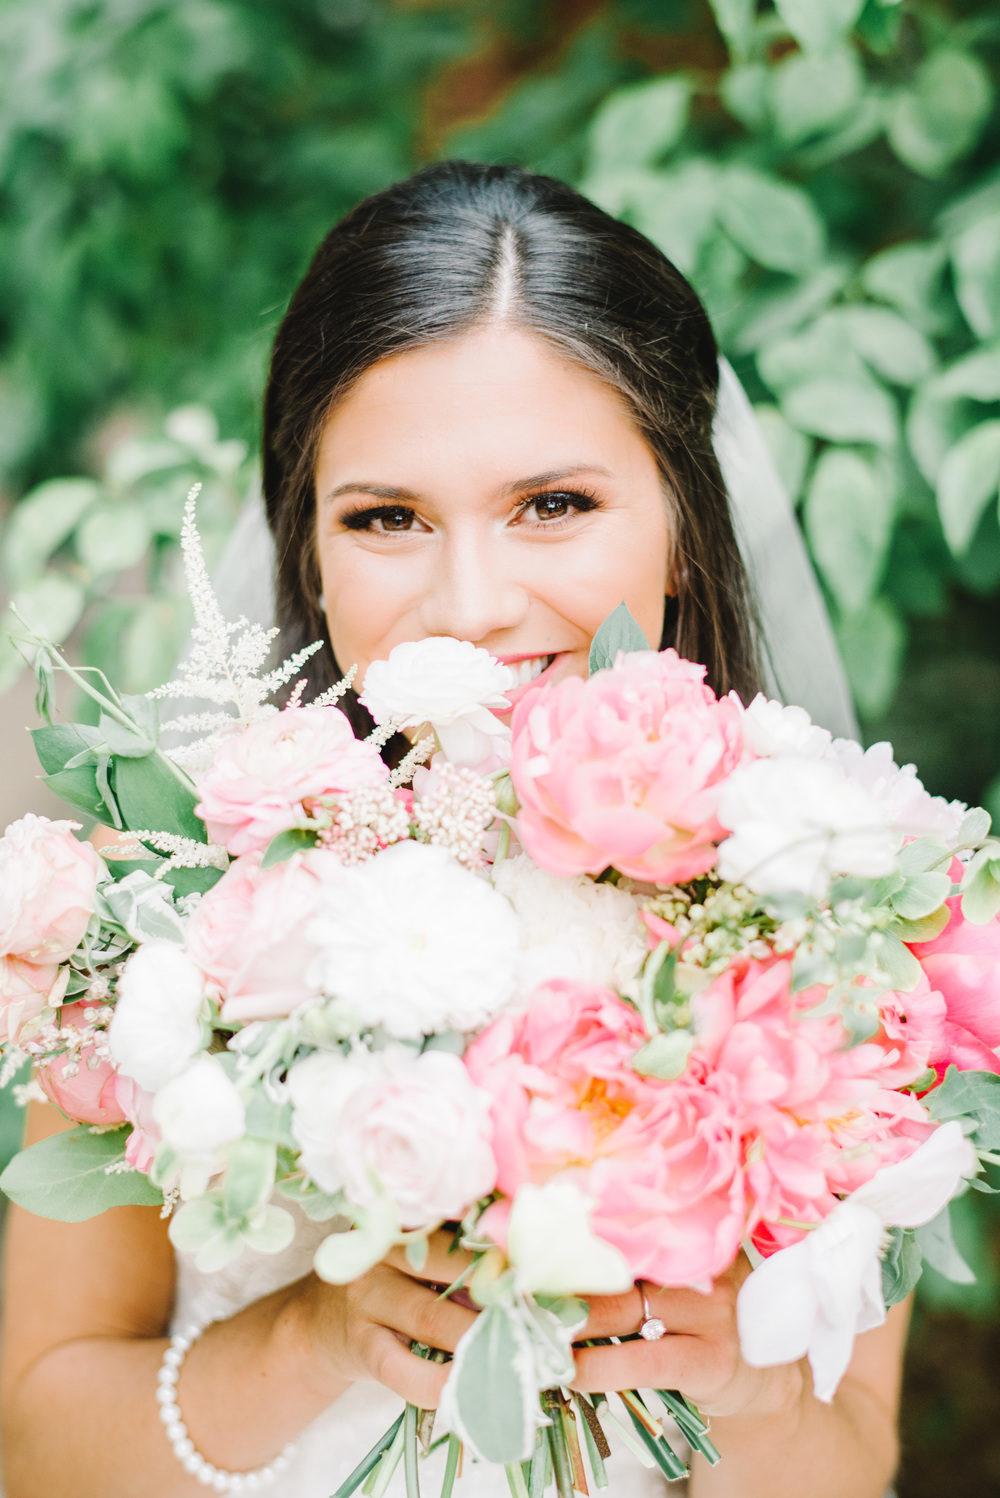 jessica-zimmerman-events-floral-design-coordination-planning-planner-little-rock-conway-arkansas-southern-florist-wedding-home-work-family-balance-business-mentor-mom-southern-bridal-portraits-pink-bouquet